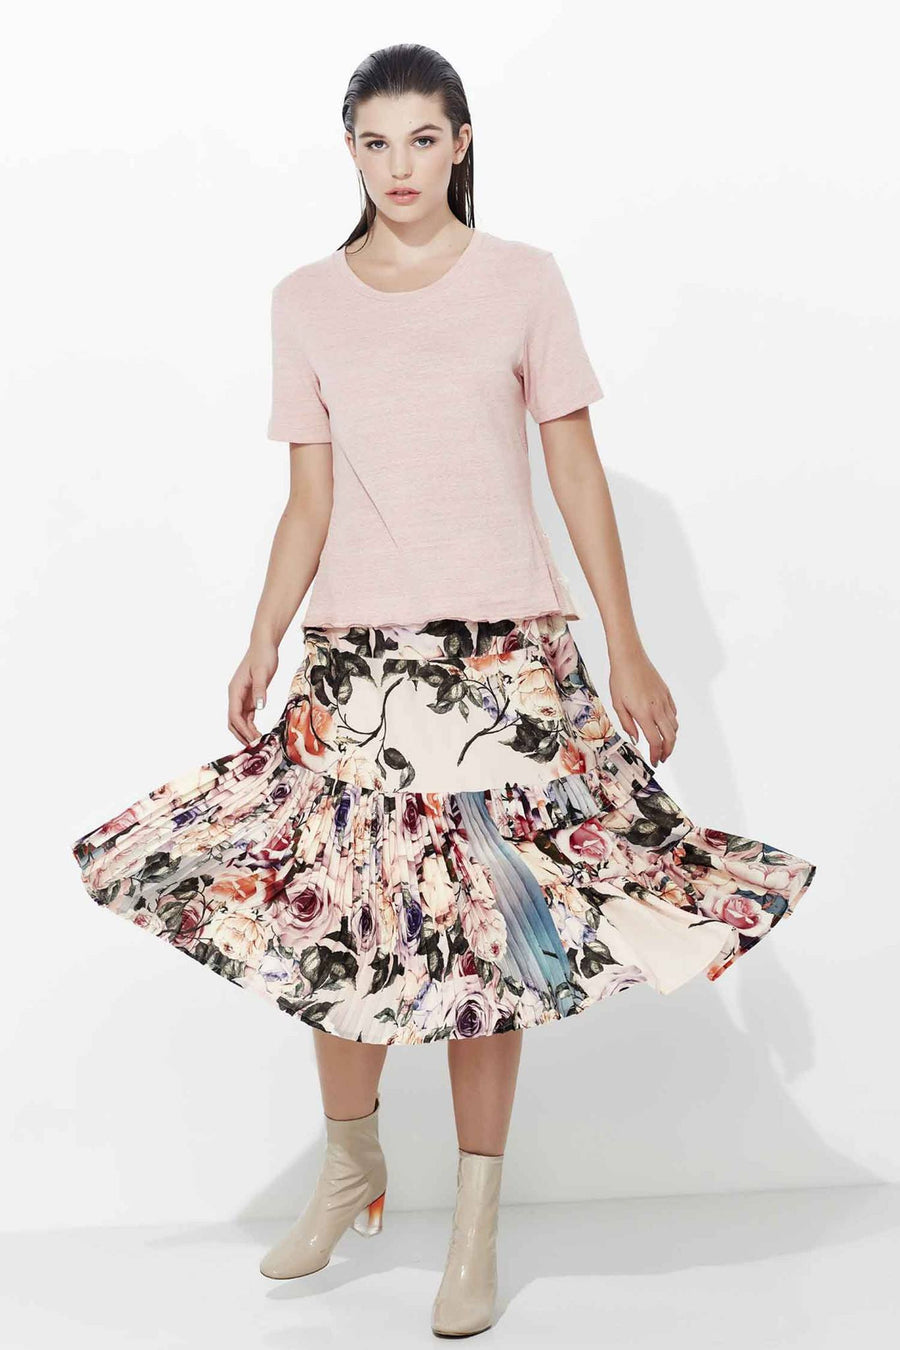 Pleat Me Skirt by Curate Frockaholics.com